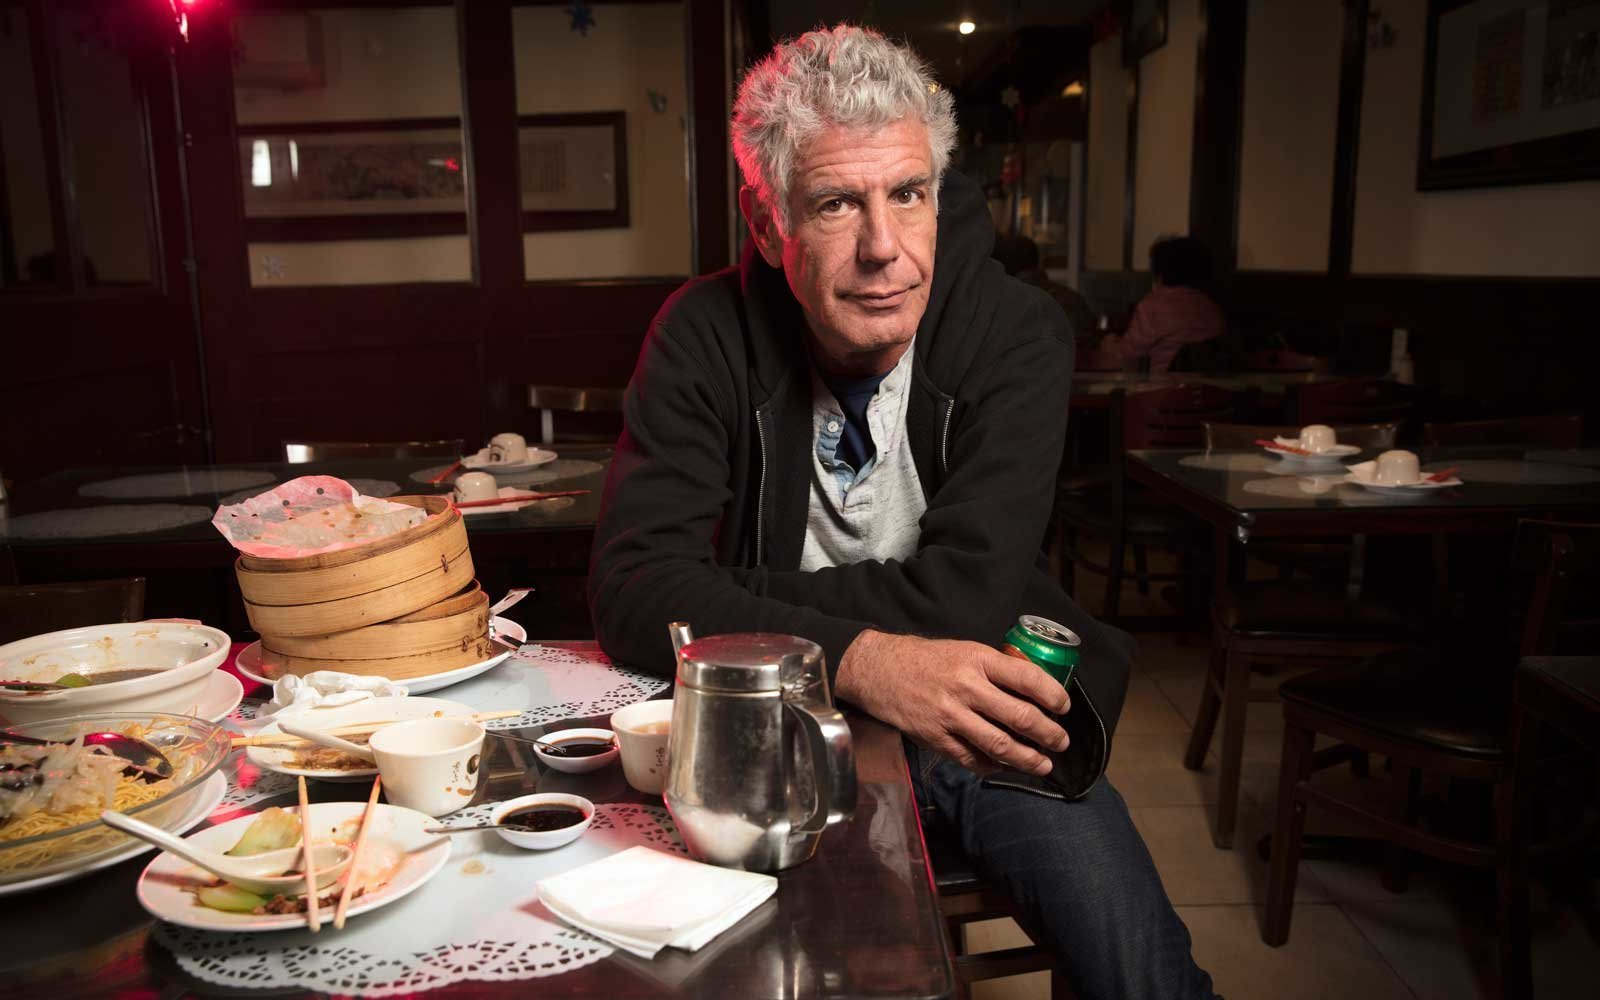 A chef par excellence- Anthony Bourdain is no more